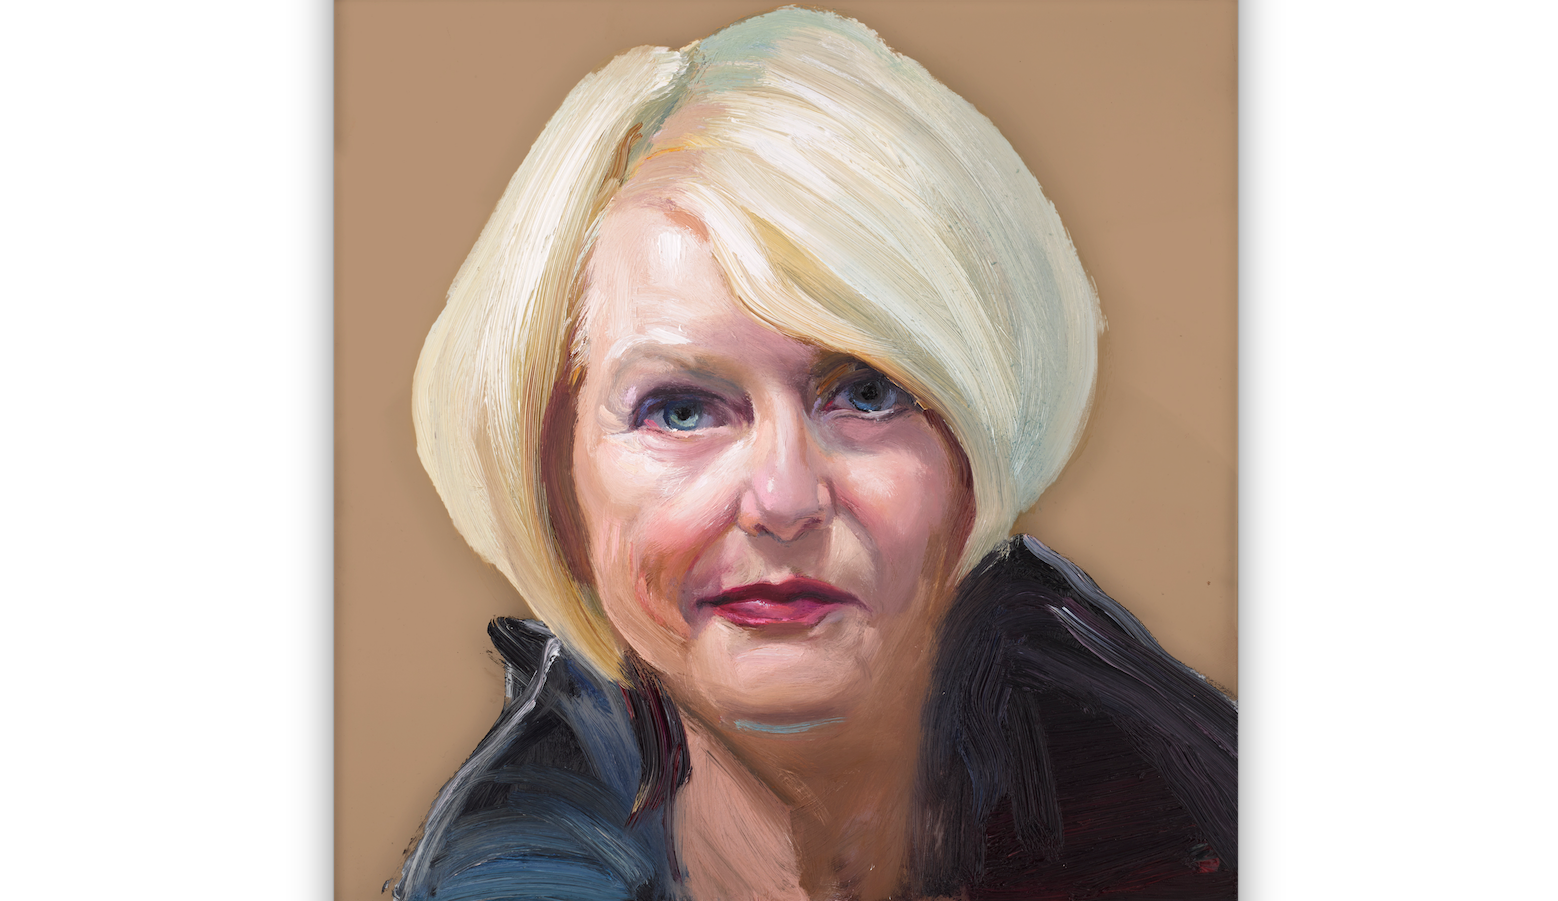 Darcia Jones Francey as painted by Ray Turner